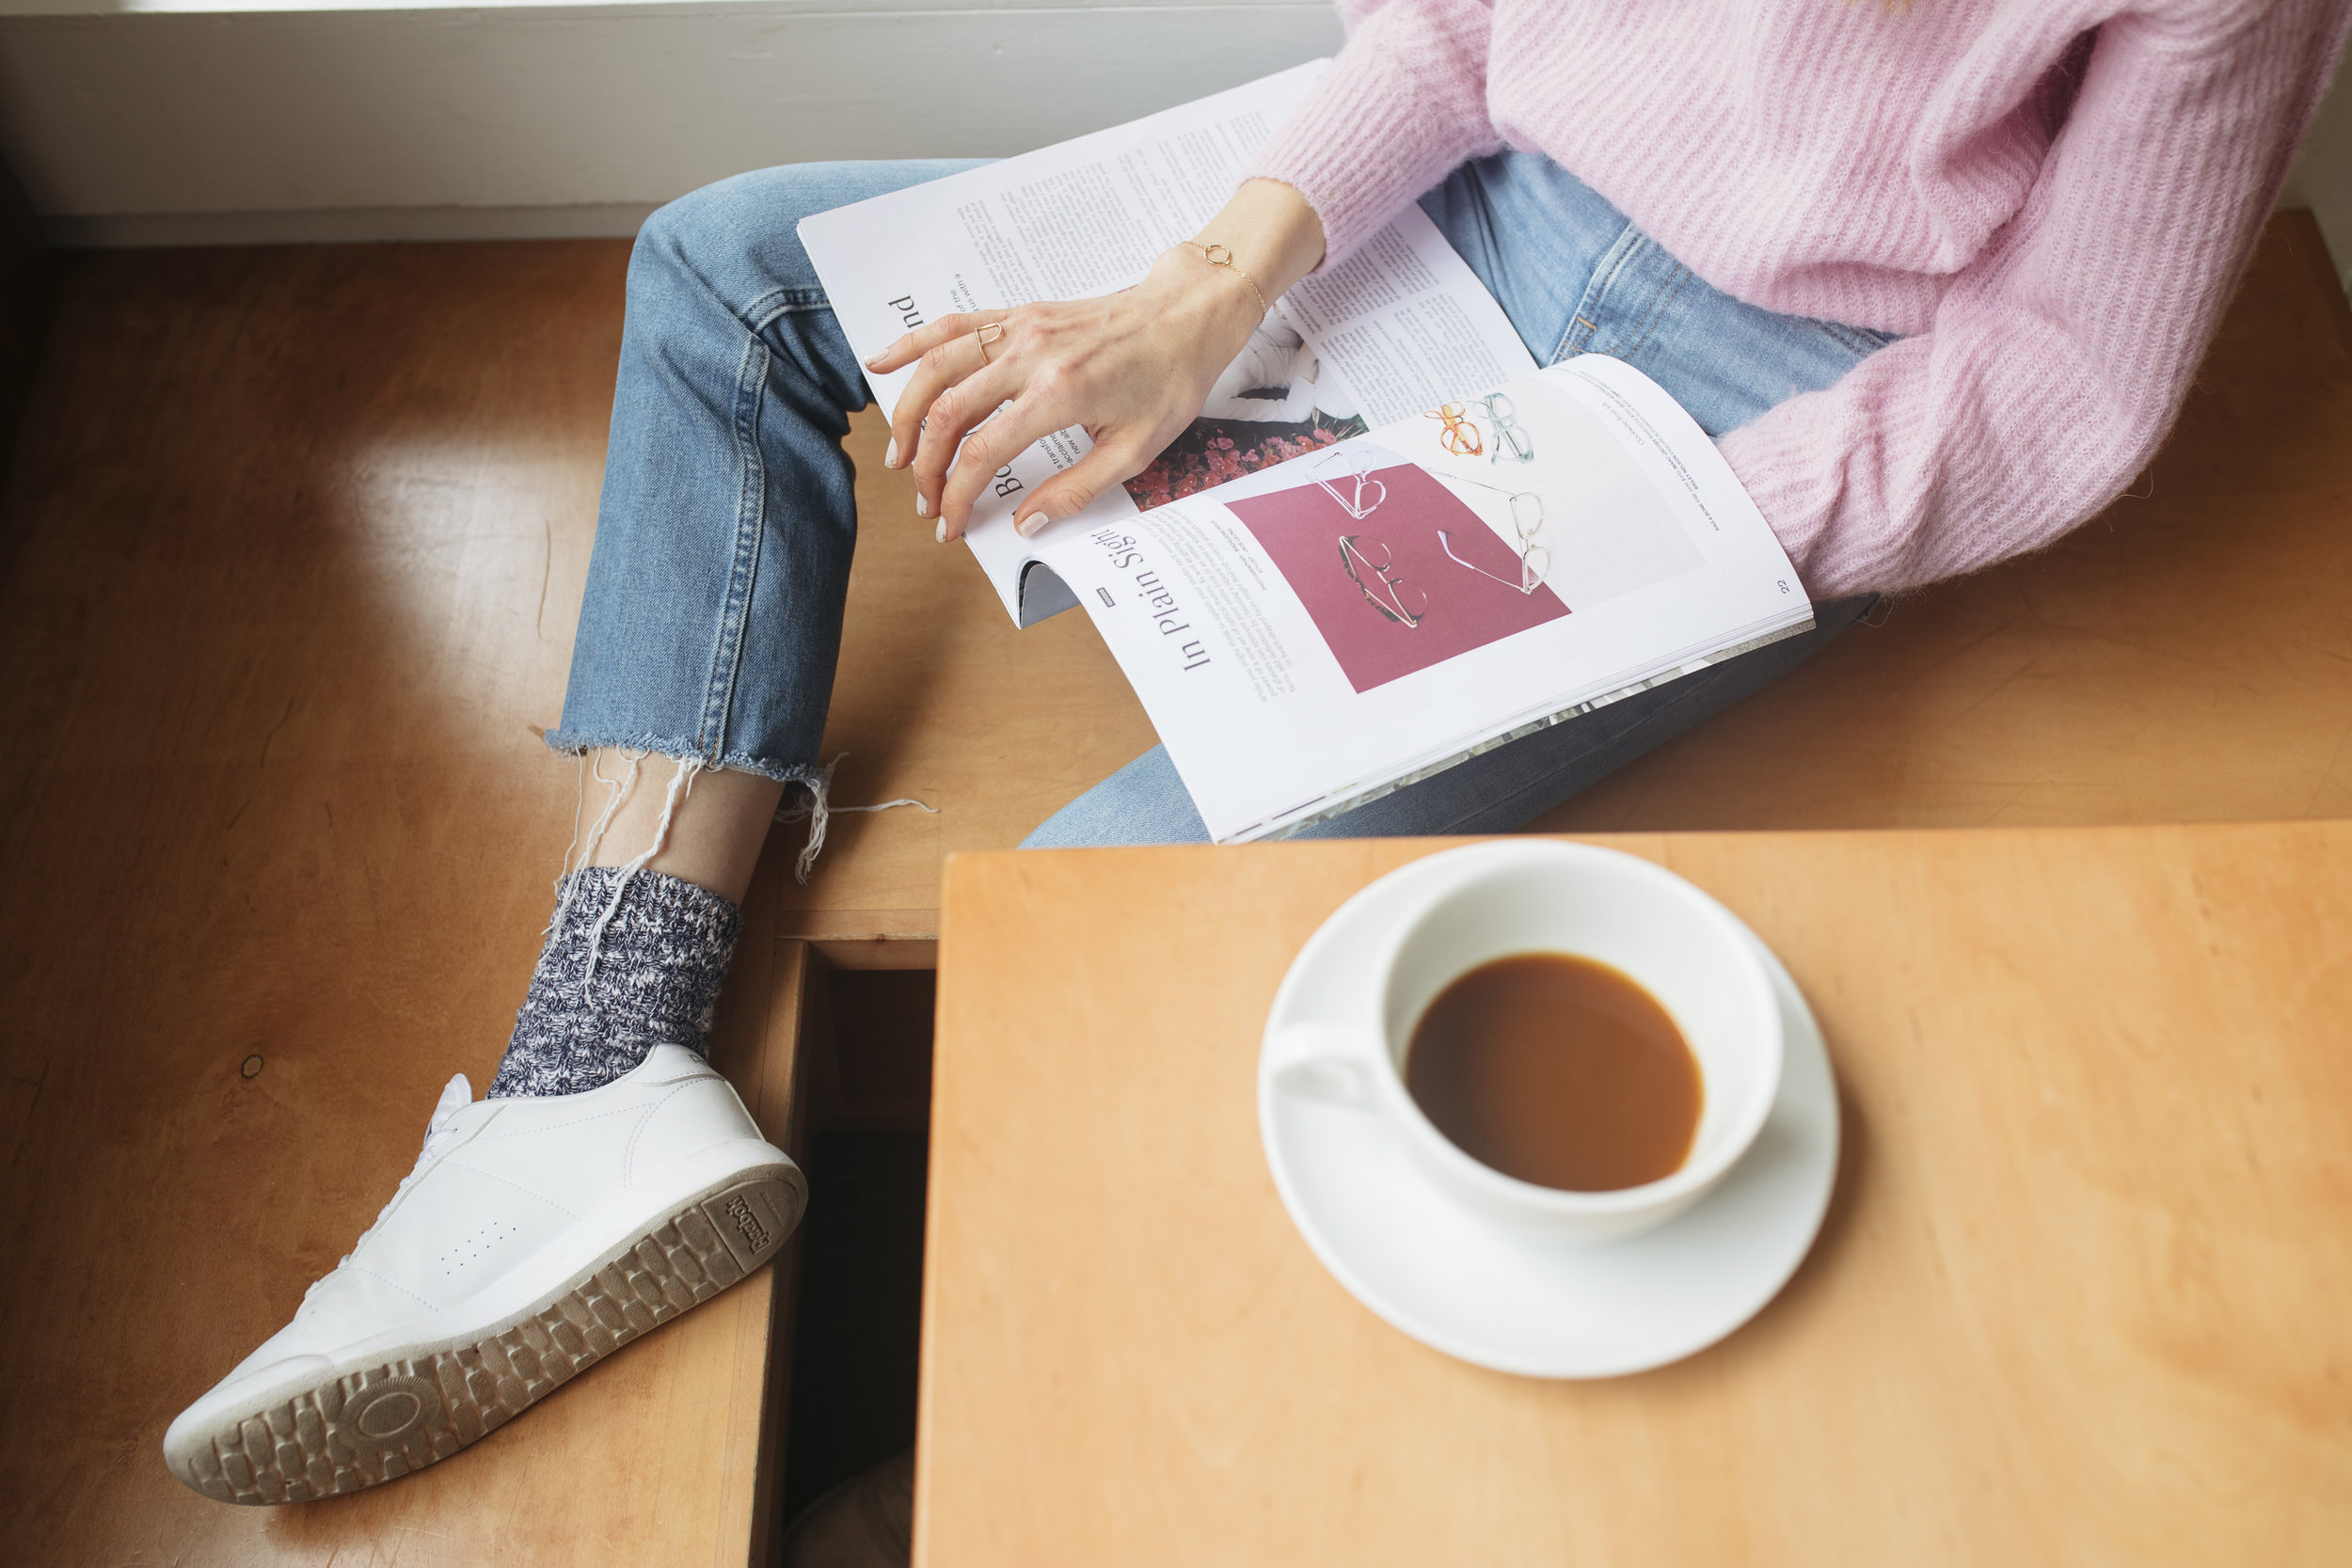 Studying fashion and drinking coffee in a pink ethically made Everlane sweater